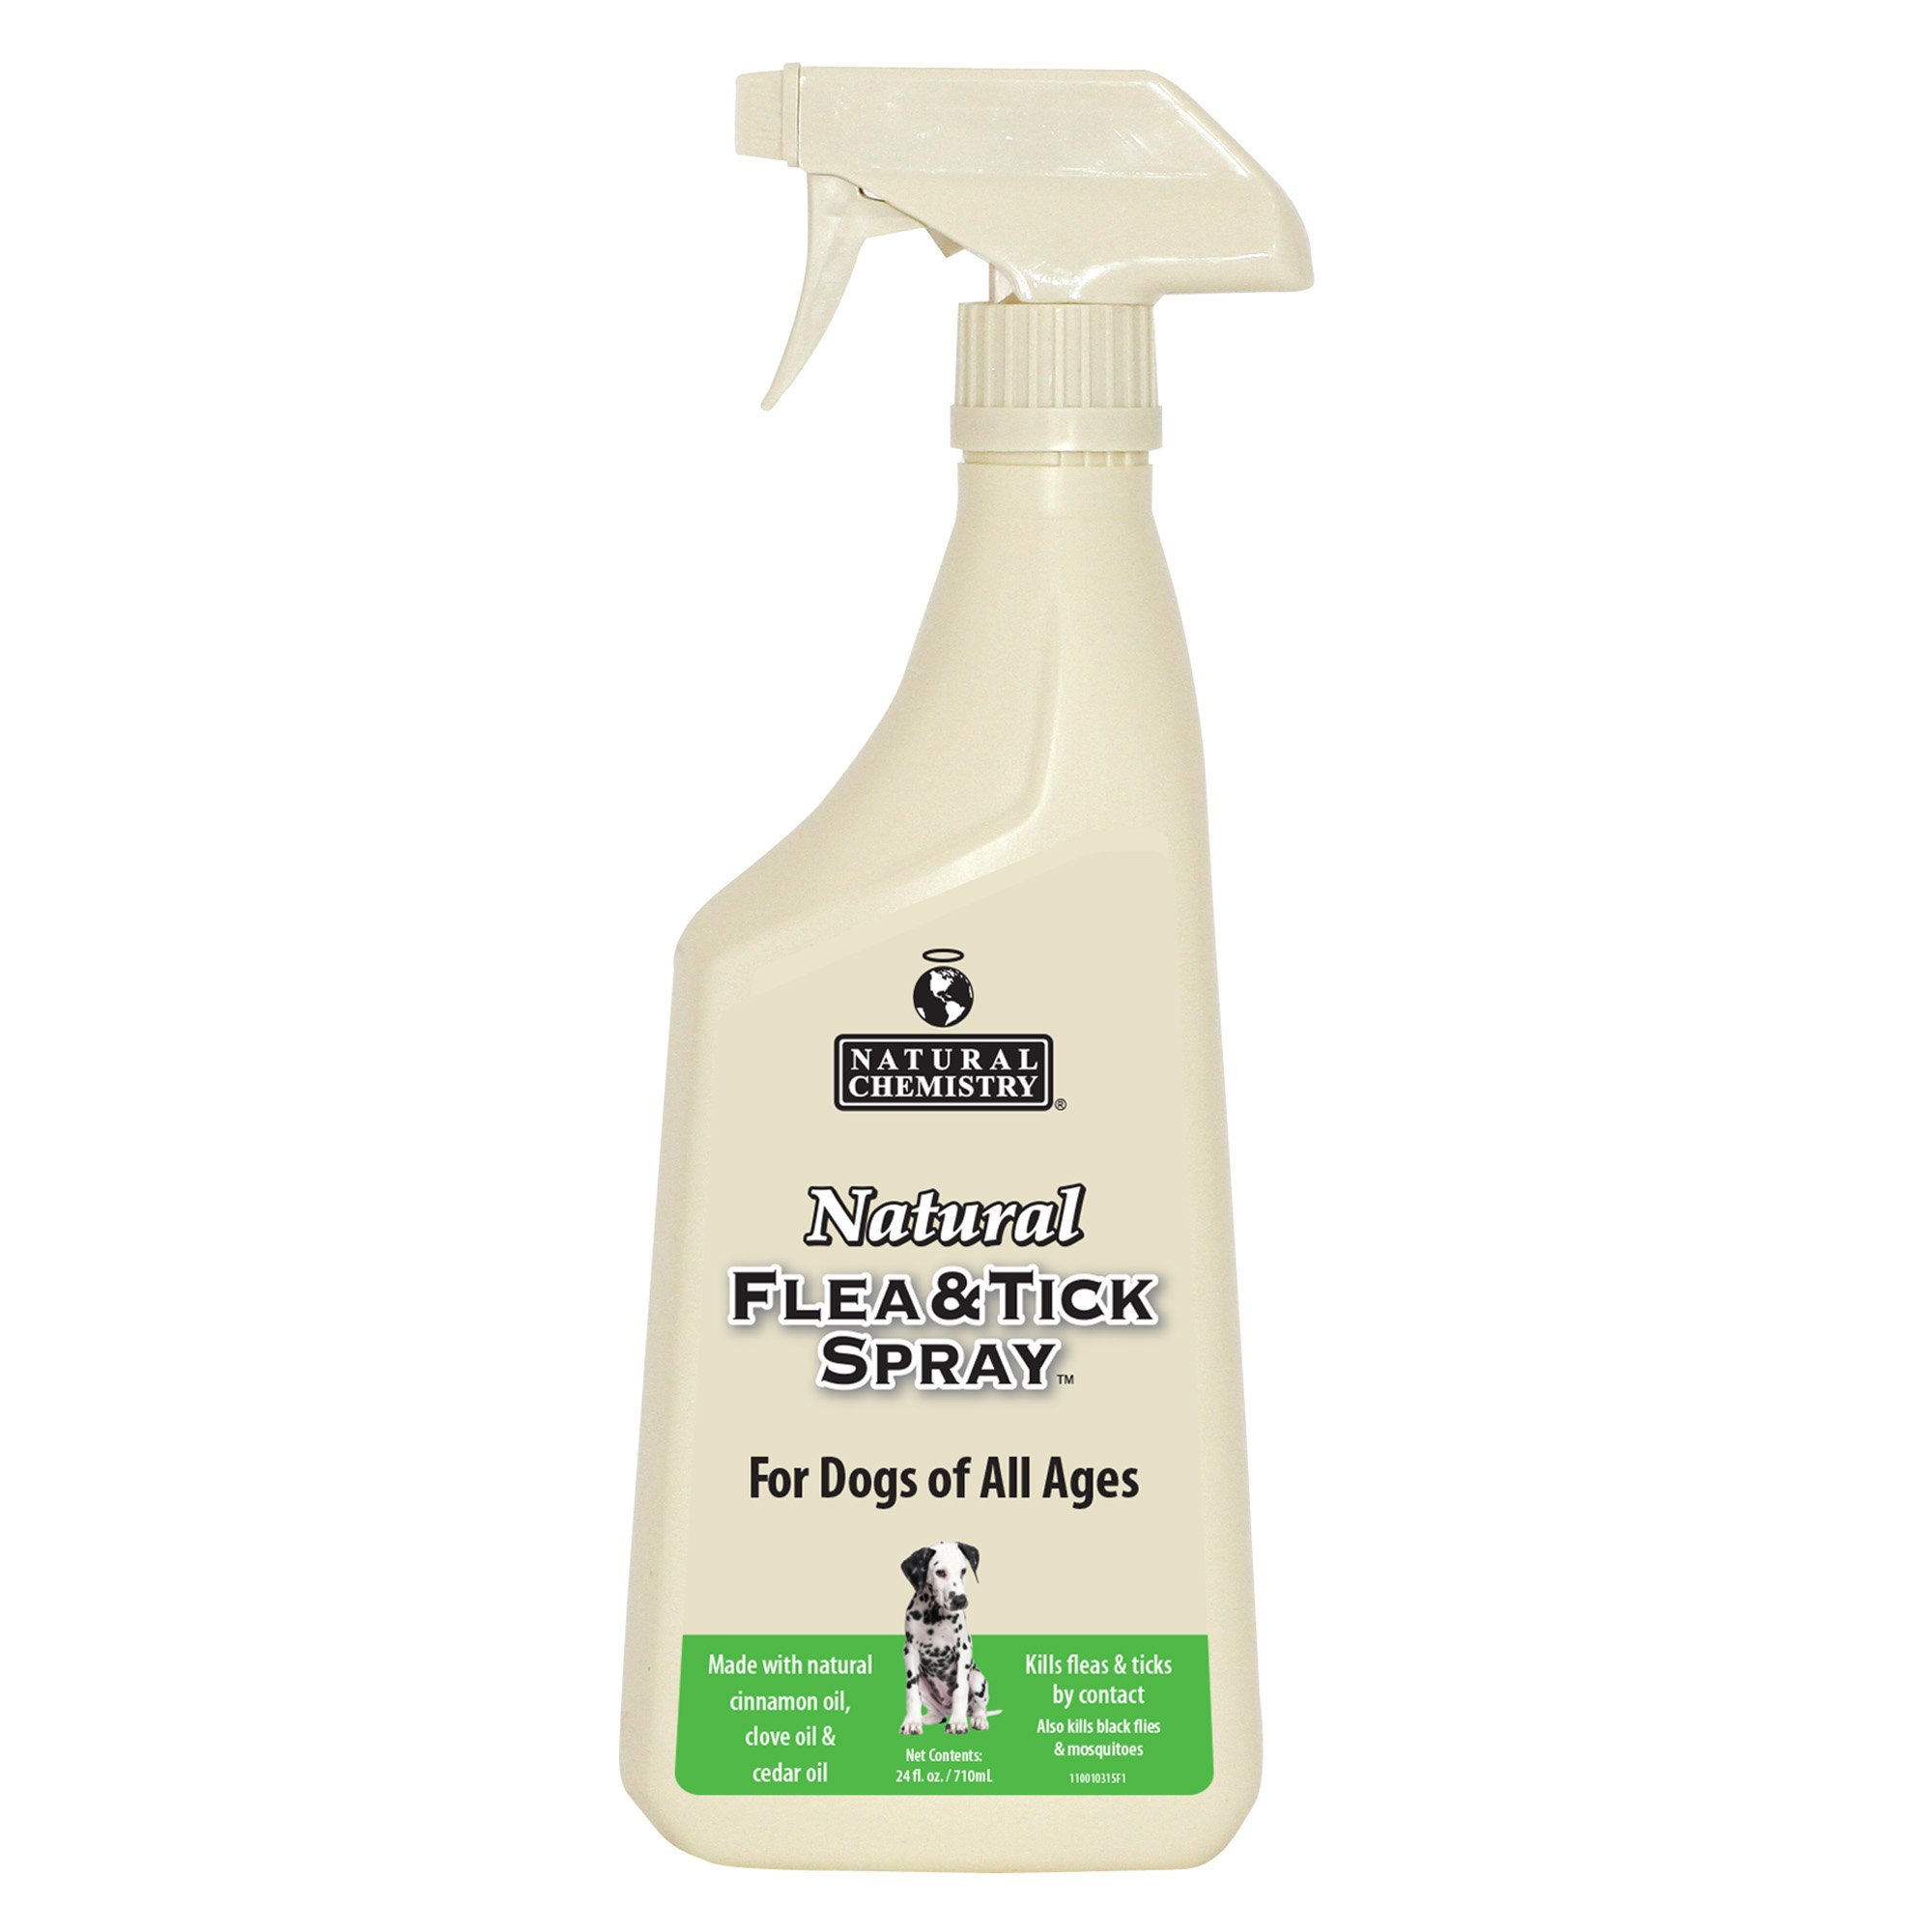 Image of Natural Chemistry Dog Flea & Tick Spray, 16 fl. Oz., 16 FZ